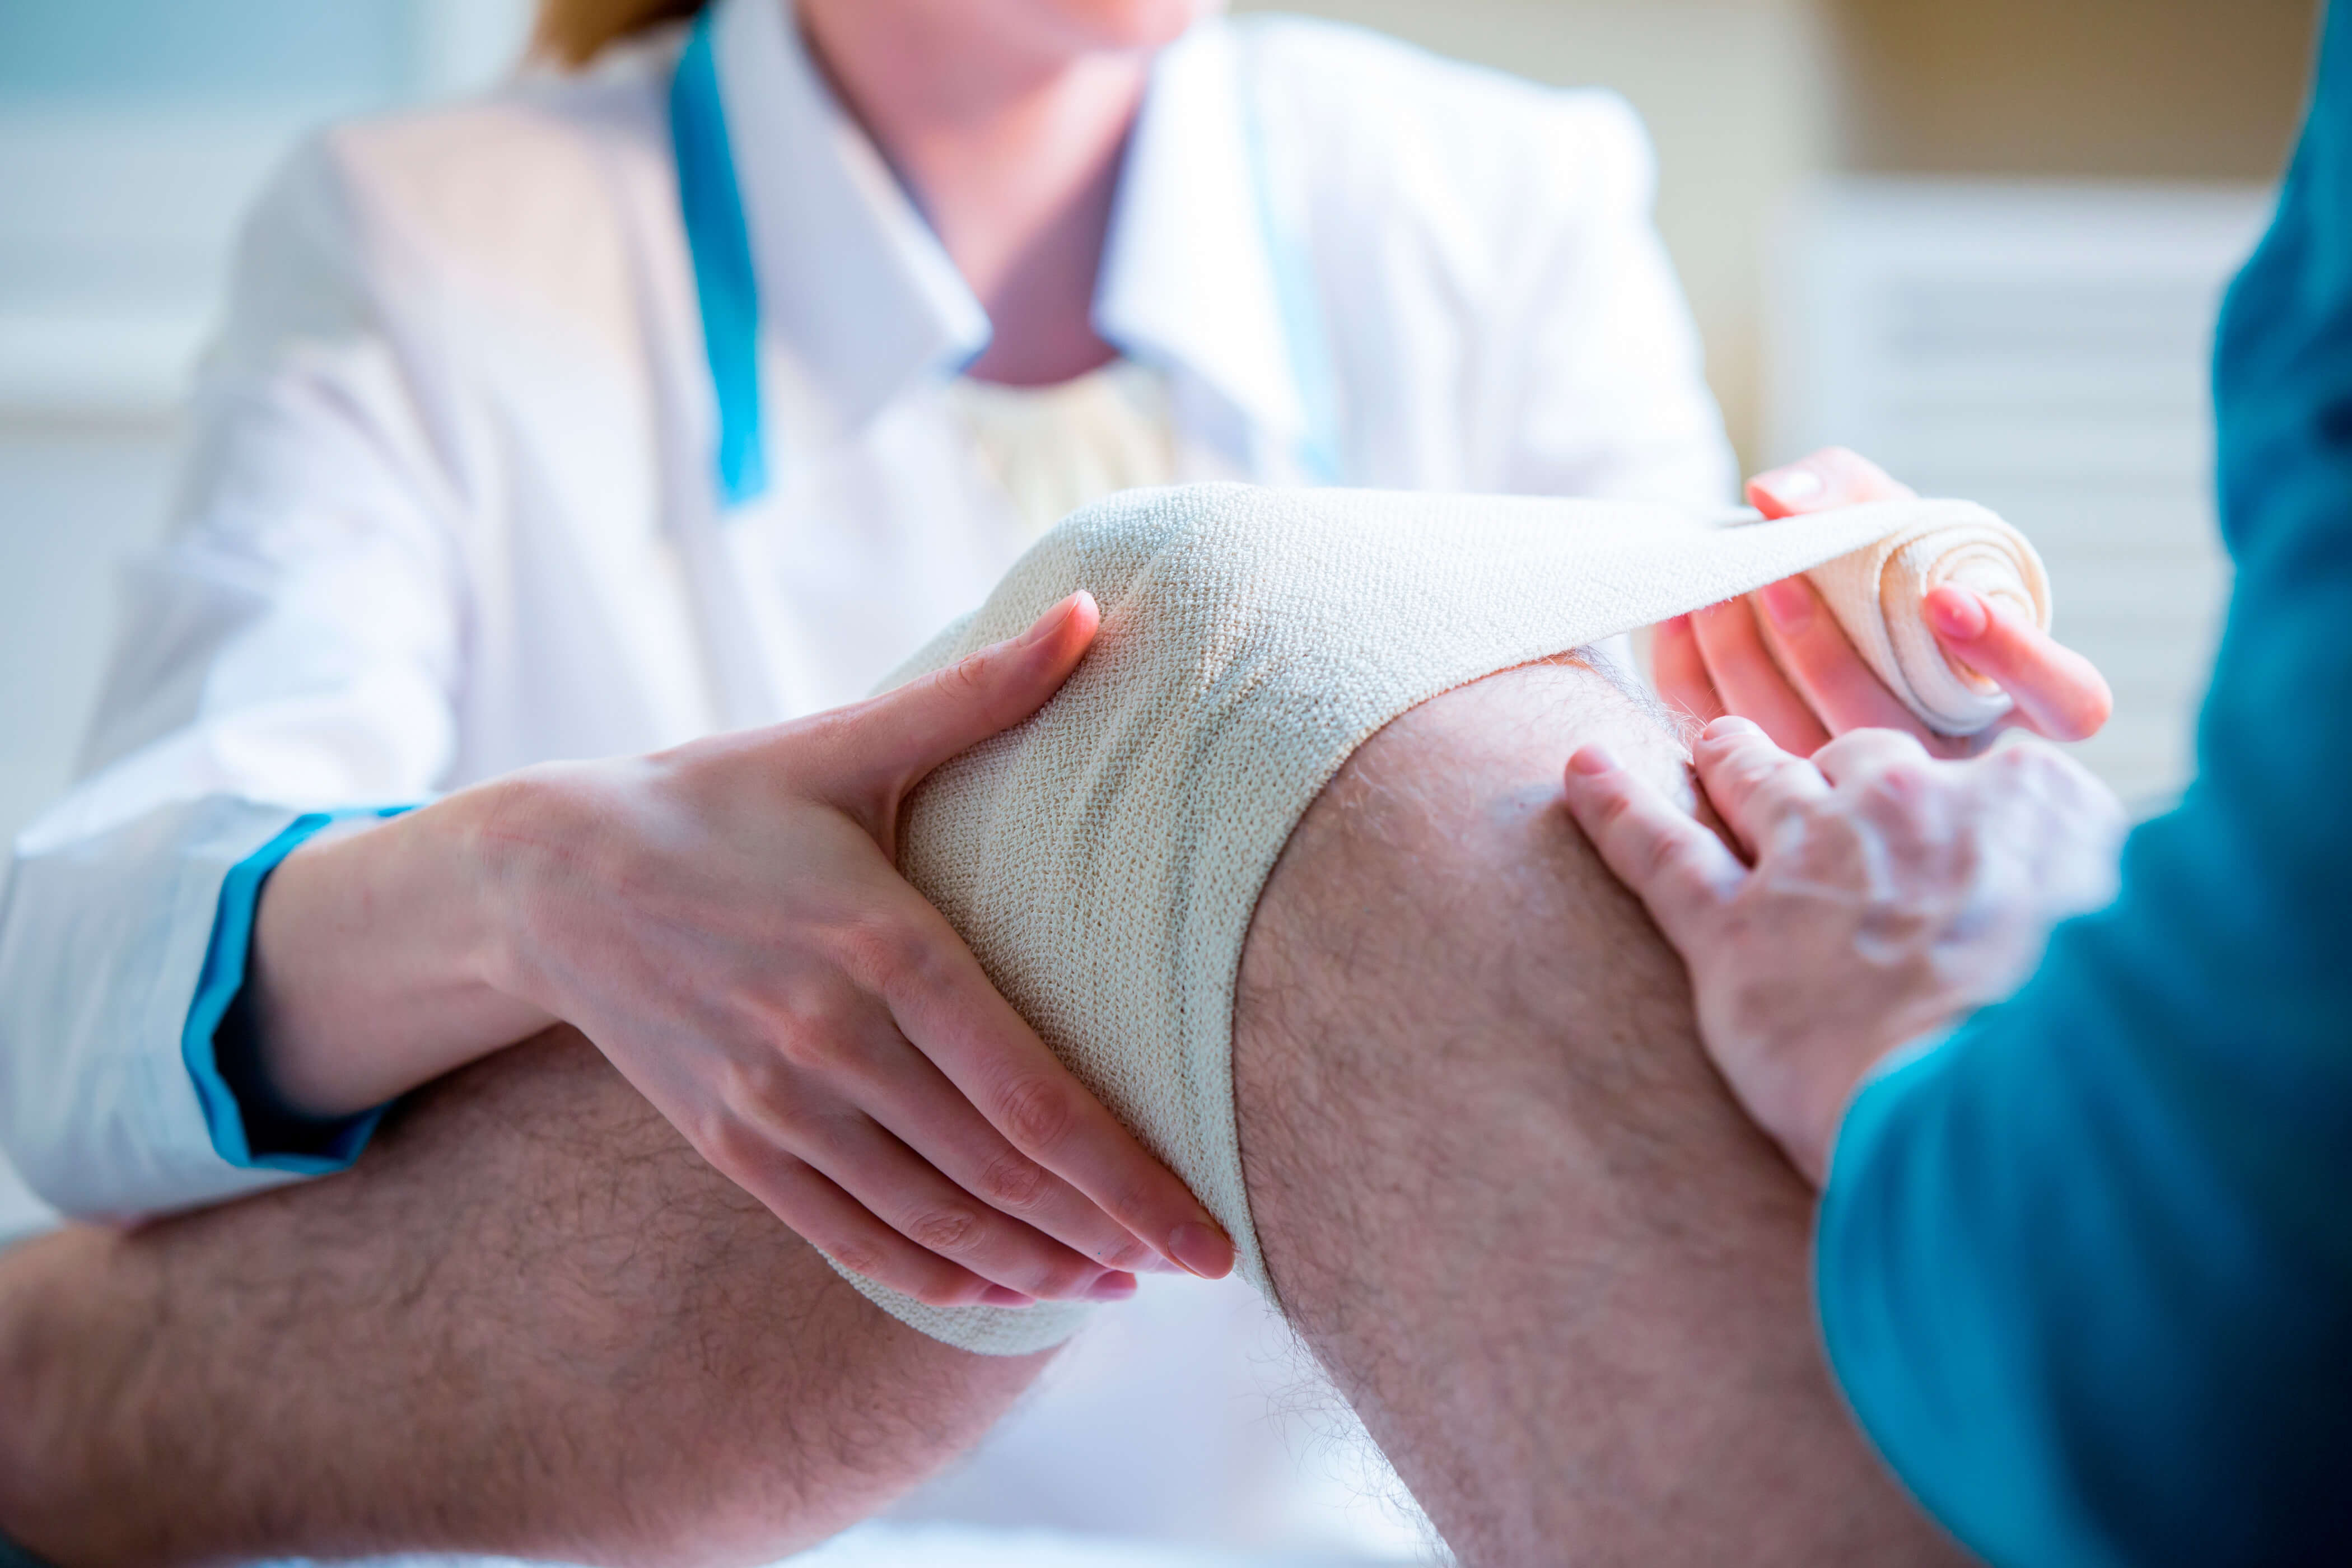 A man has his knee bandaged up by a nurse after an accident at work